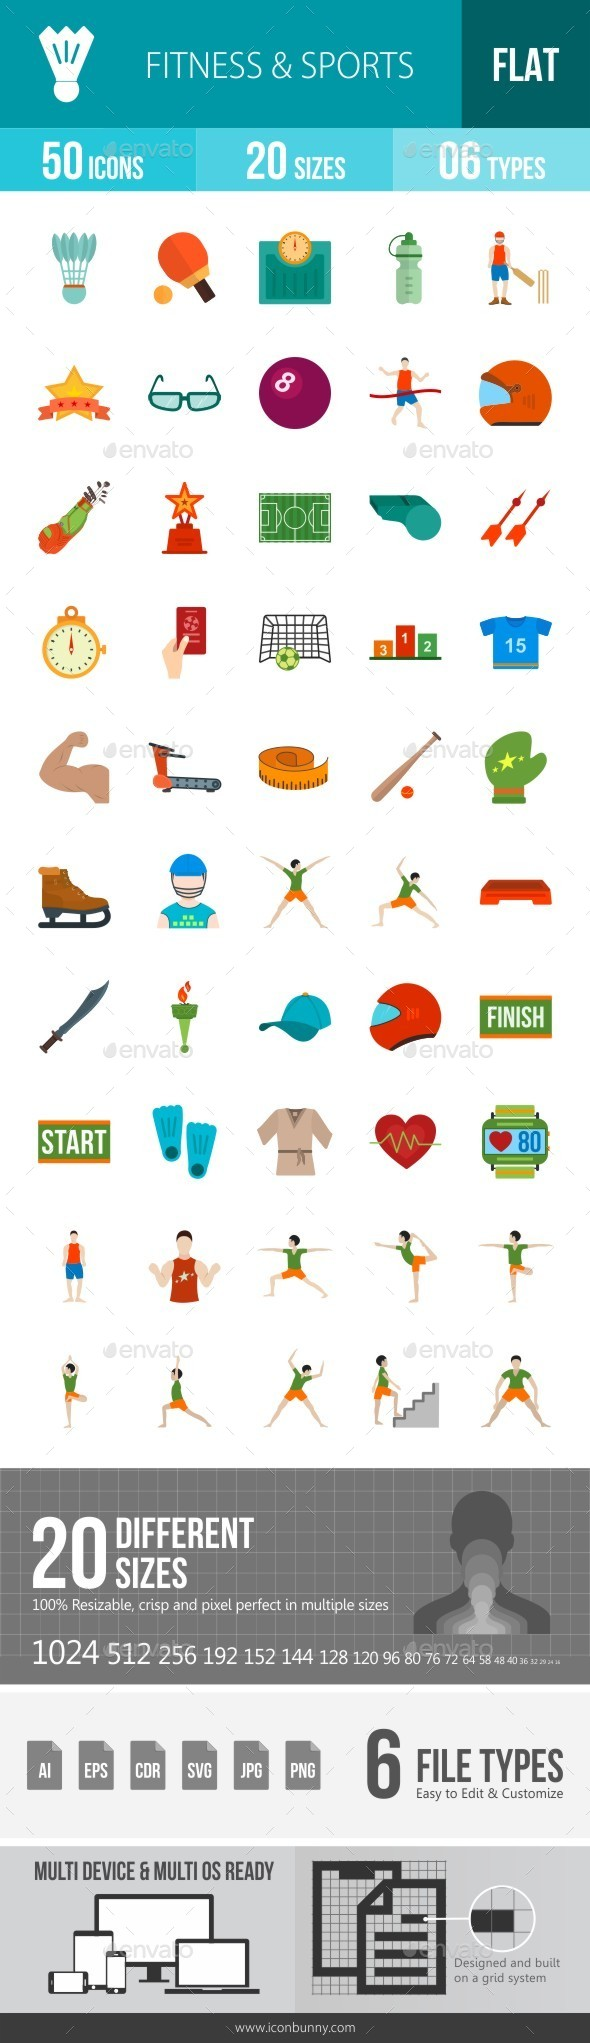 Fitness & Sports Flat Multicolor Icons - Icons